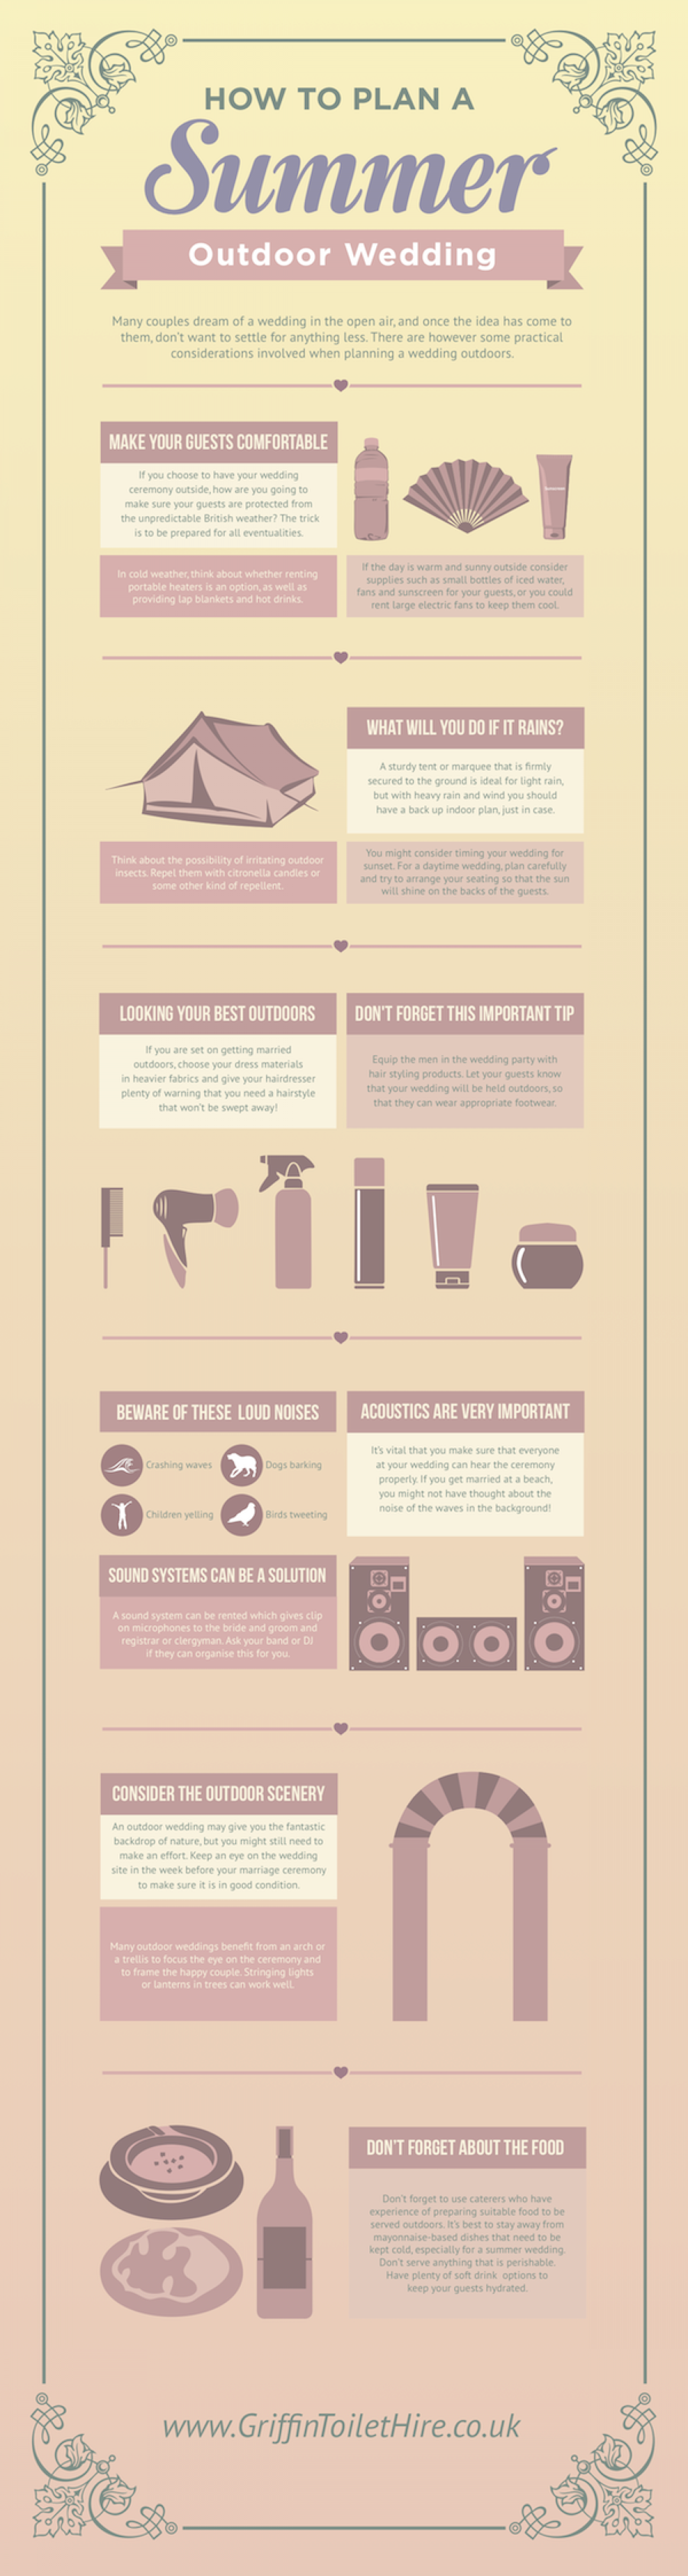 How to Plan a Summer Outdoor Wedding Infographic